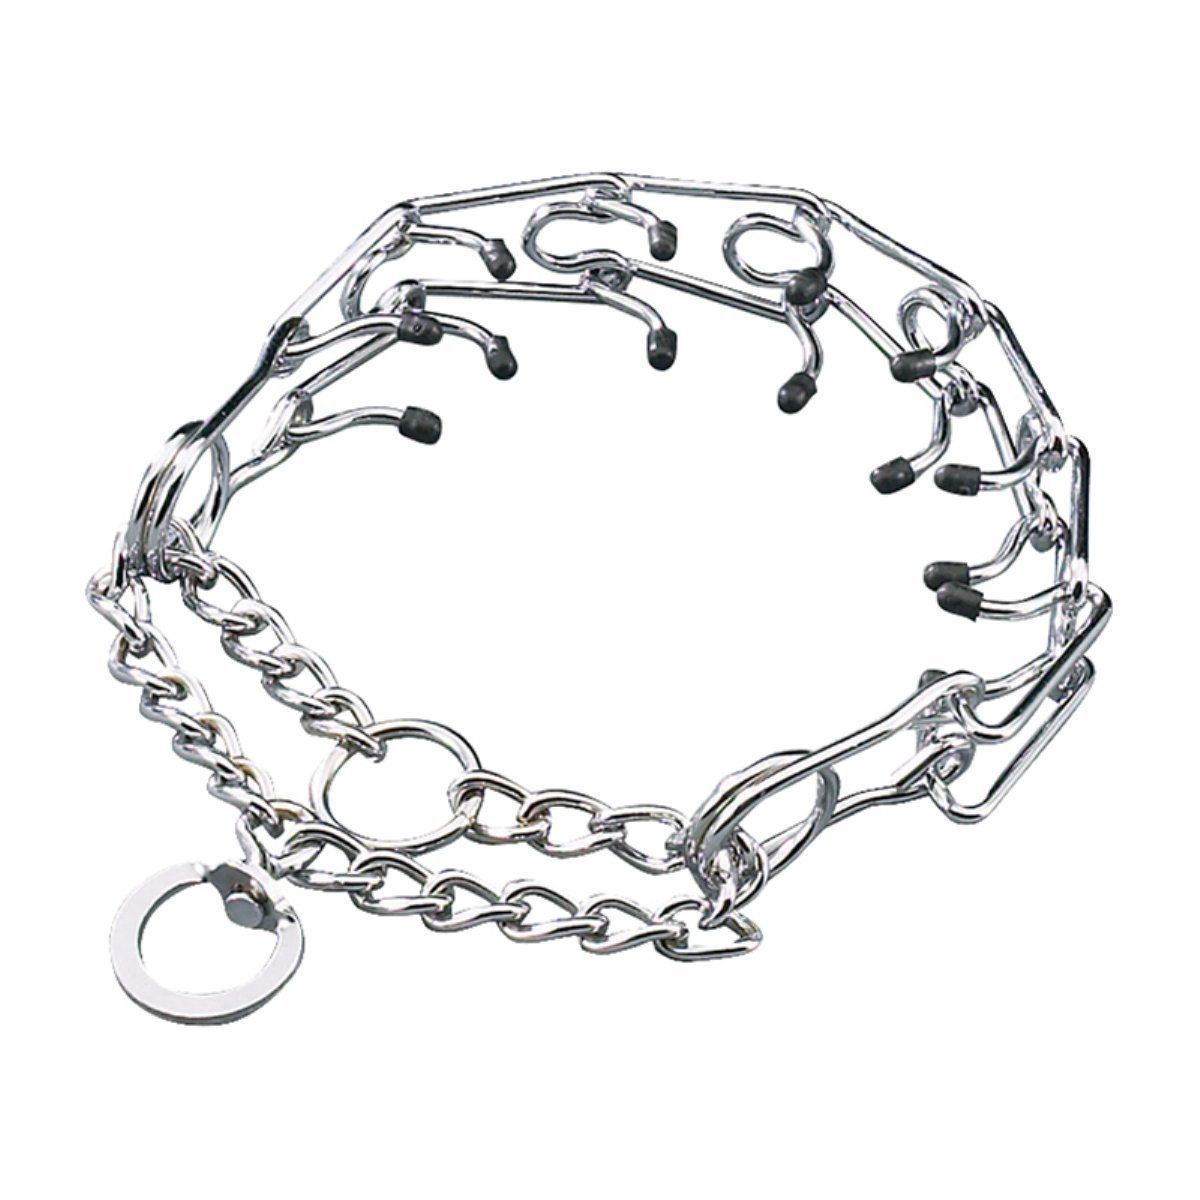 Guardian Gear Prong Collar With Rubber Tips